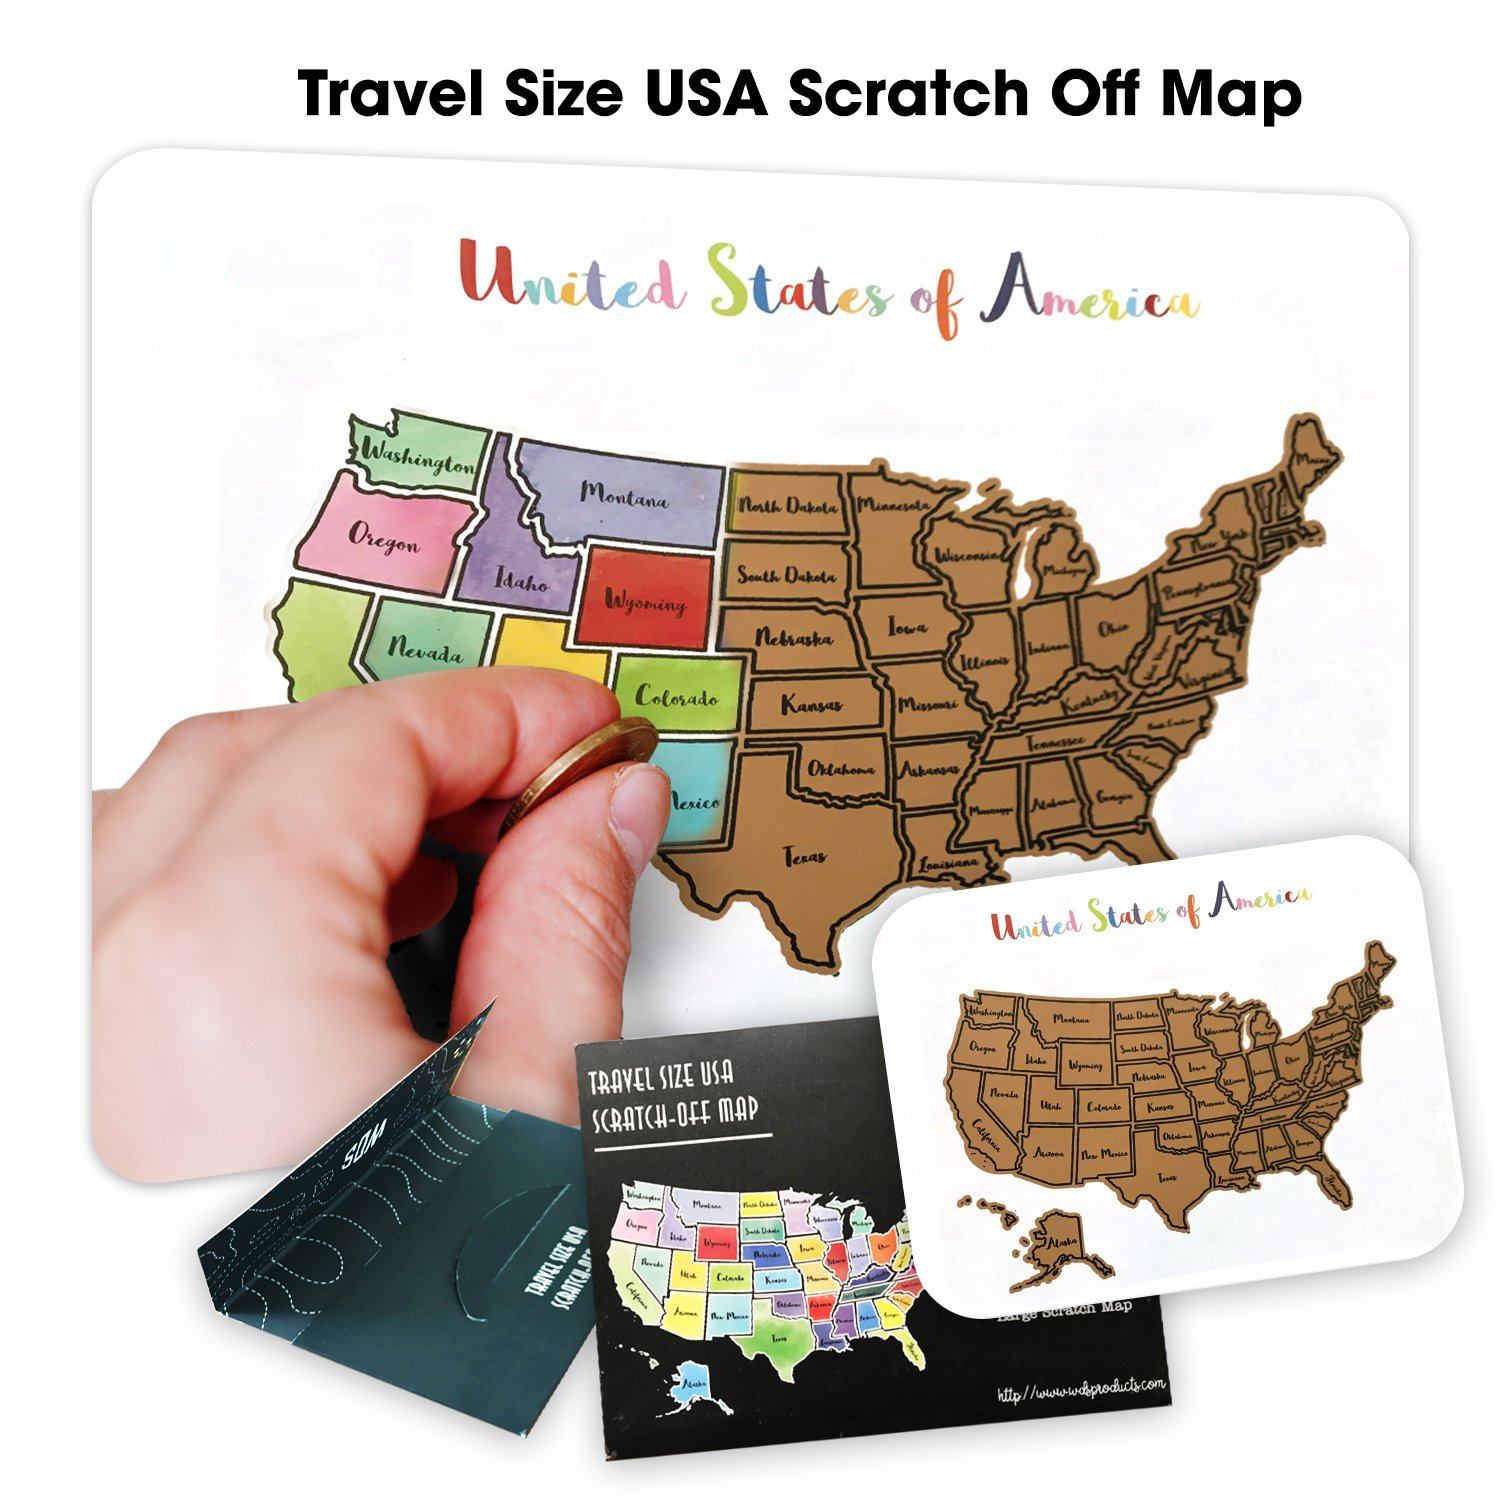 Amazon.com: Travel Size USA Scratch Off Map - Play The License Plate ...